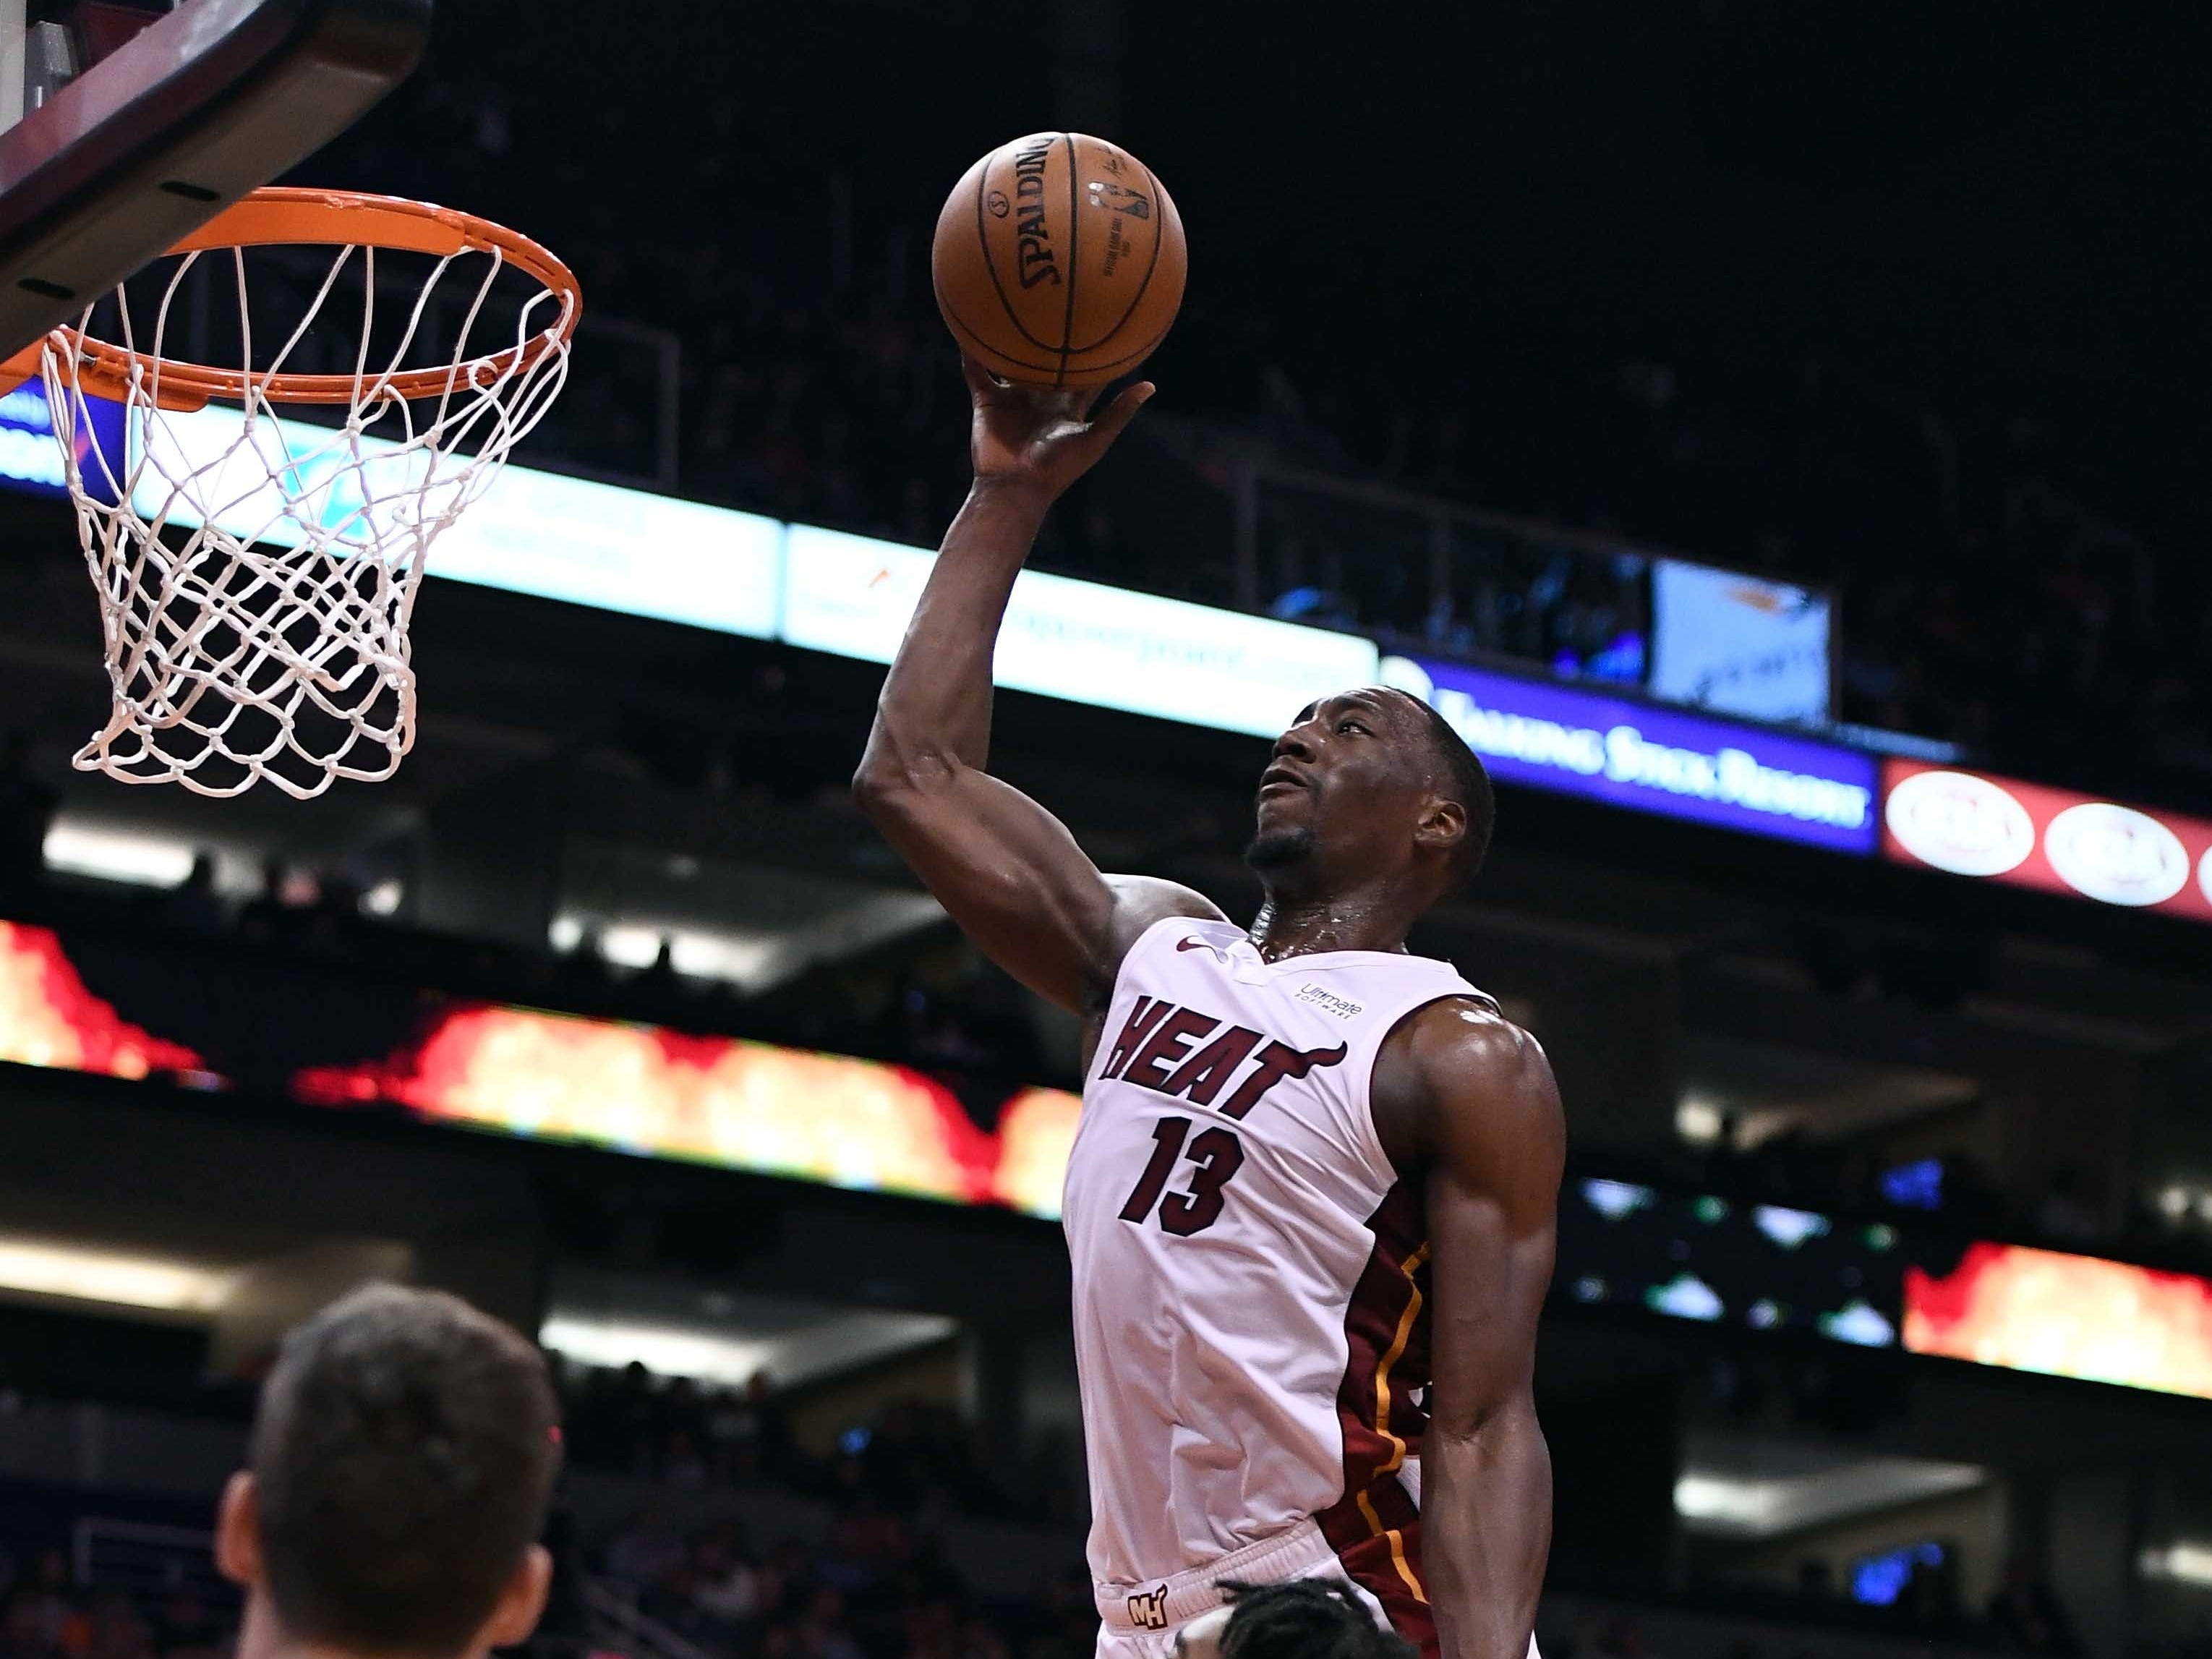 Dec 7, 2018; Phoenix, AZ, USA; Miami Heat center Bam Adebayo (13) dunks the ball against the Phoenix Suns in the first half at Talking Stick Resort Arena. Mandatory Credit: Jennifer Stewart-USA TODAY Sports